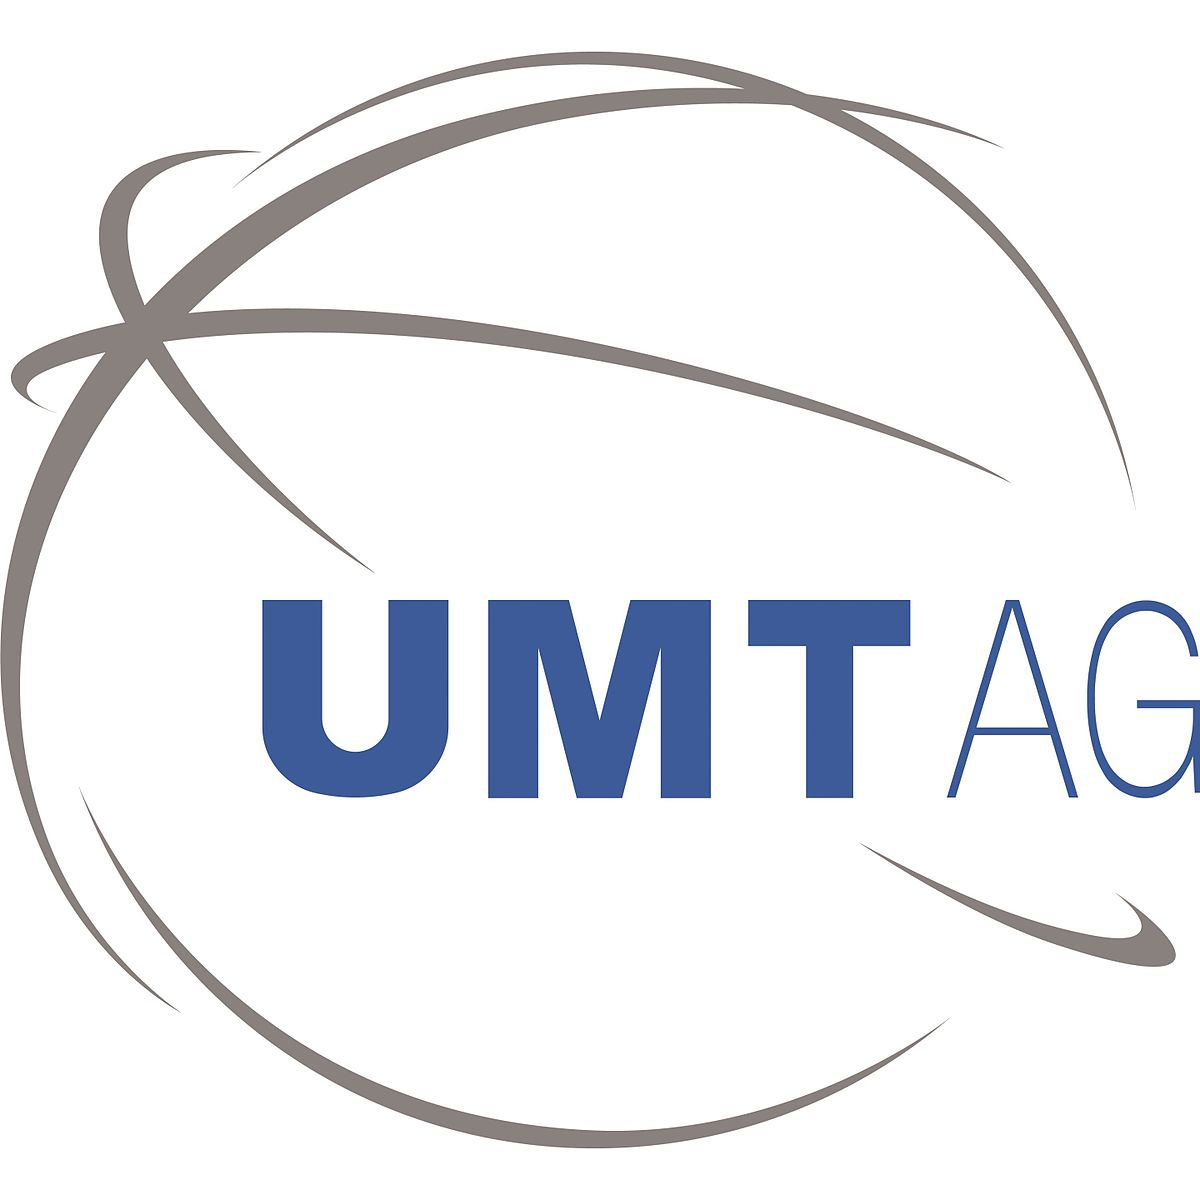 Umt United Mobility Technology